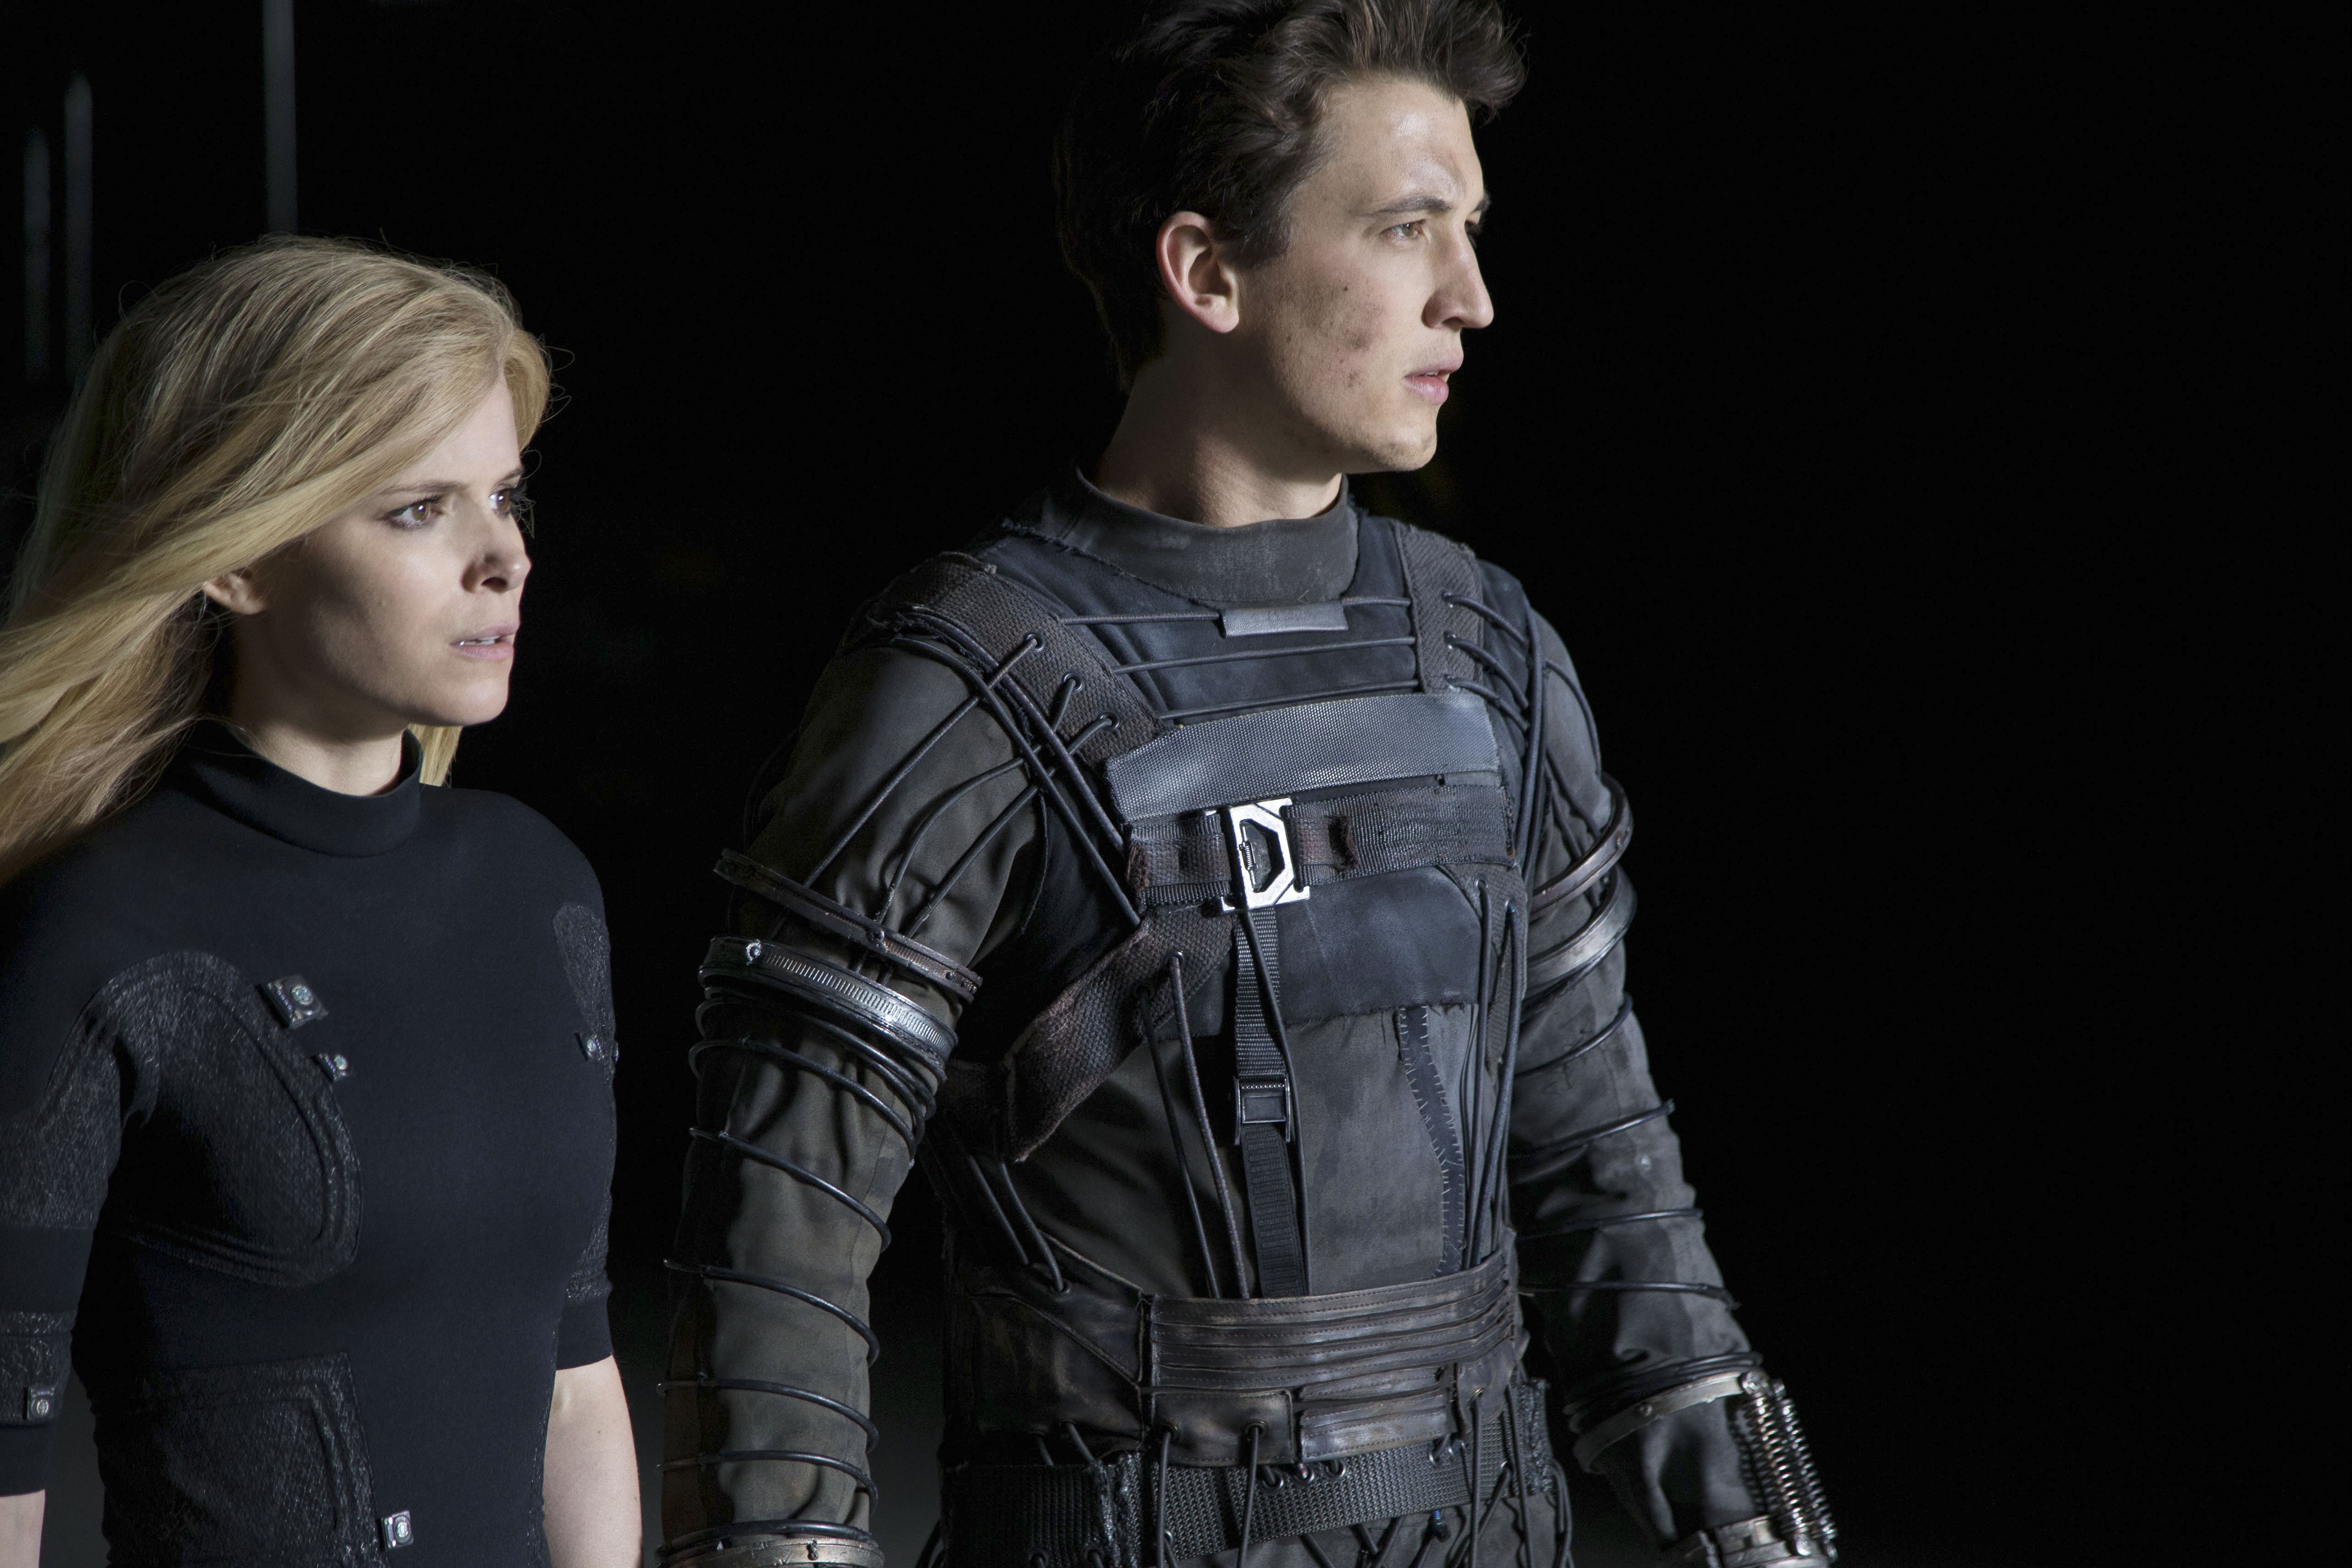 'Fantastic Four' Director Josh Trank Gives His Own Movie a Mixed Review on Letterboxd